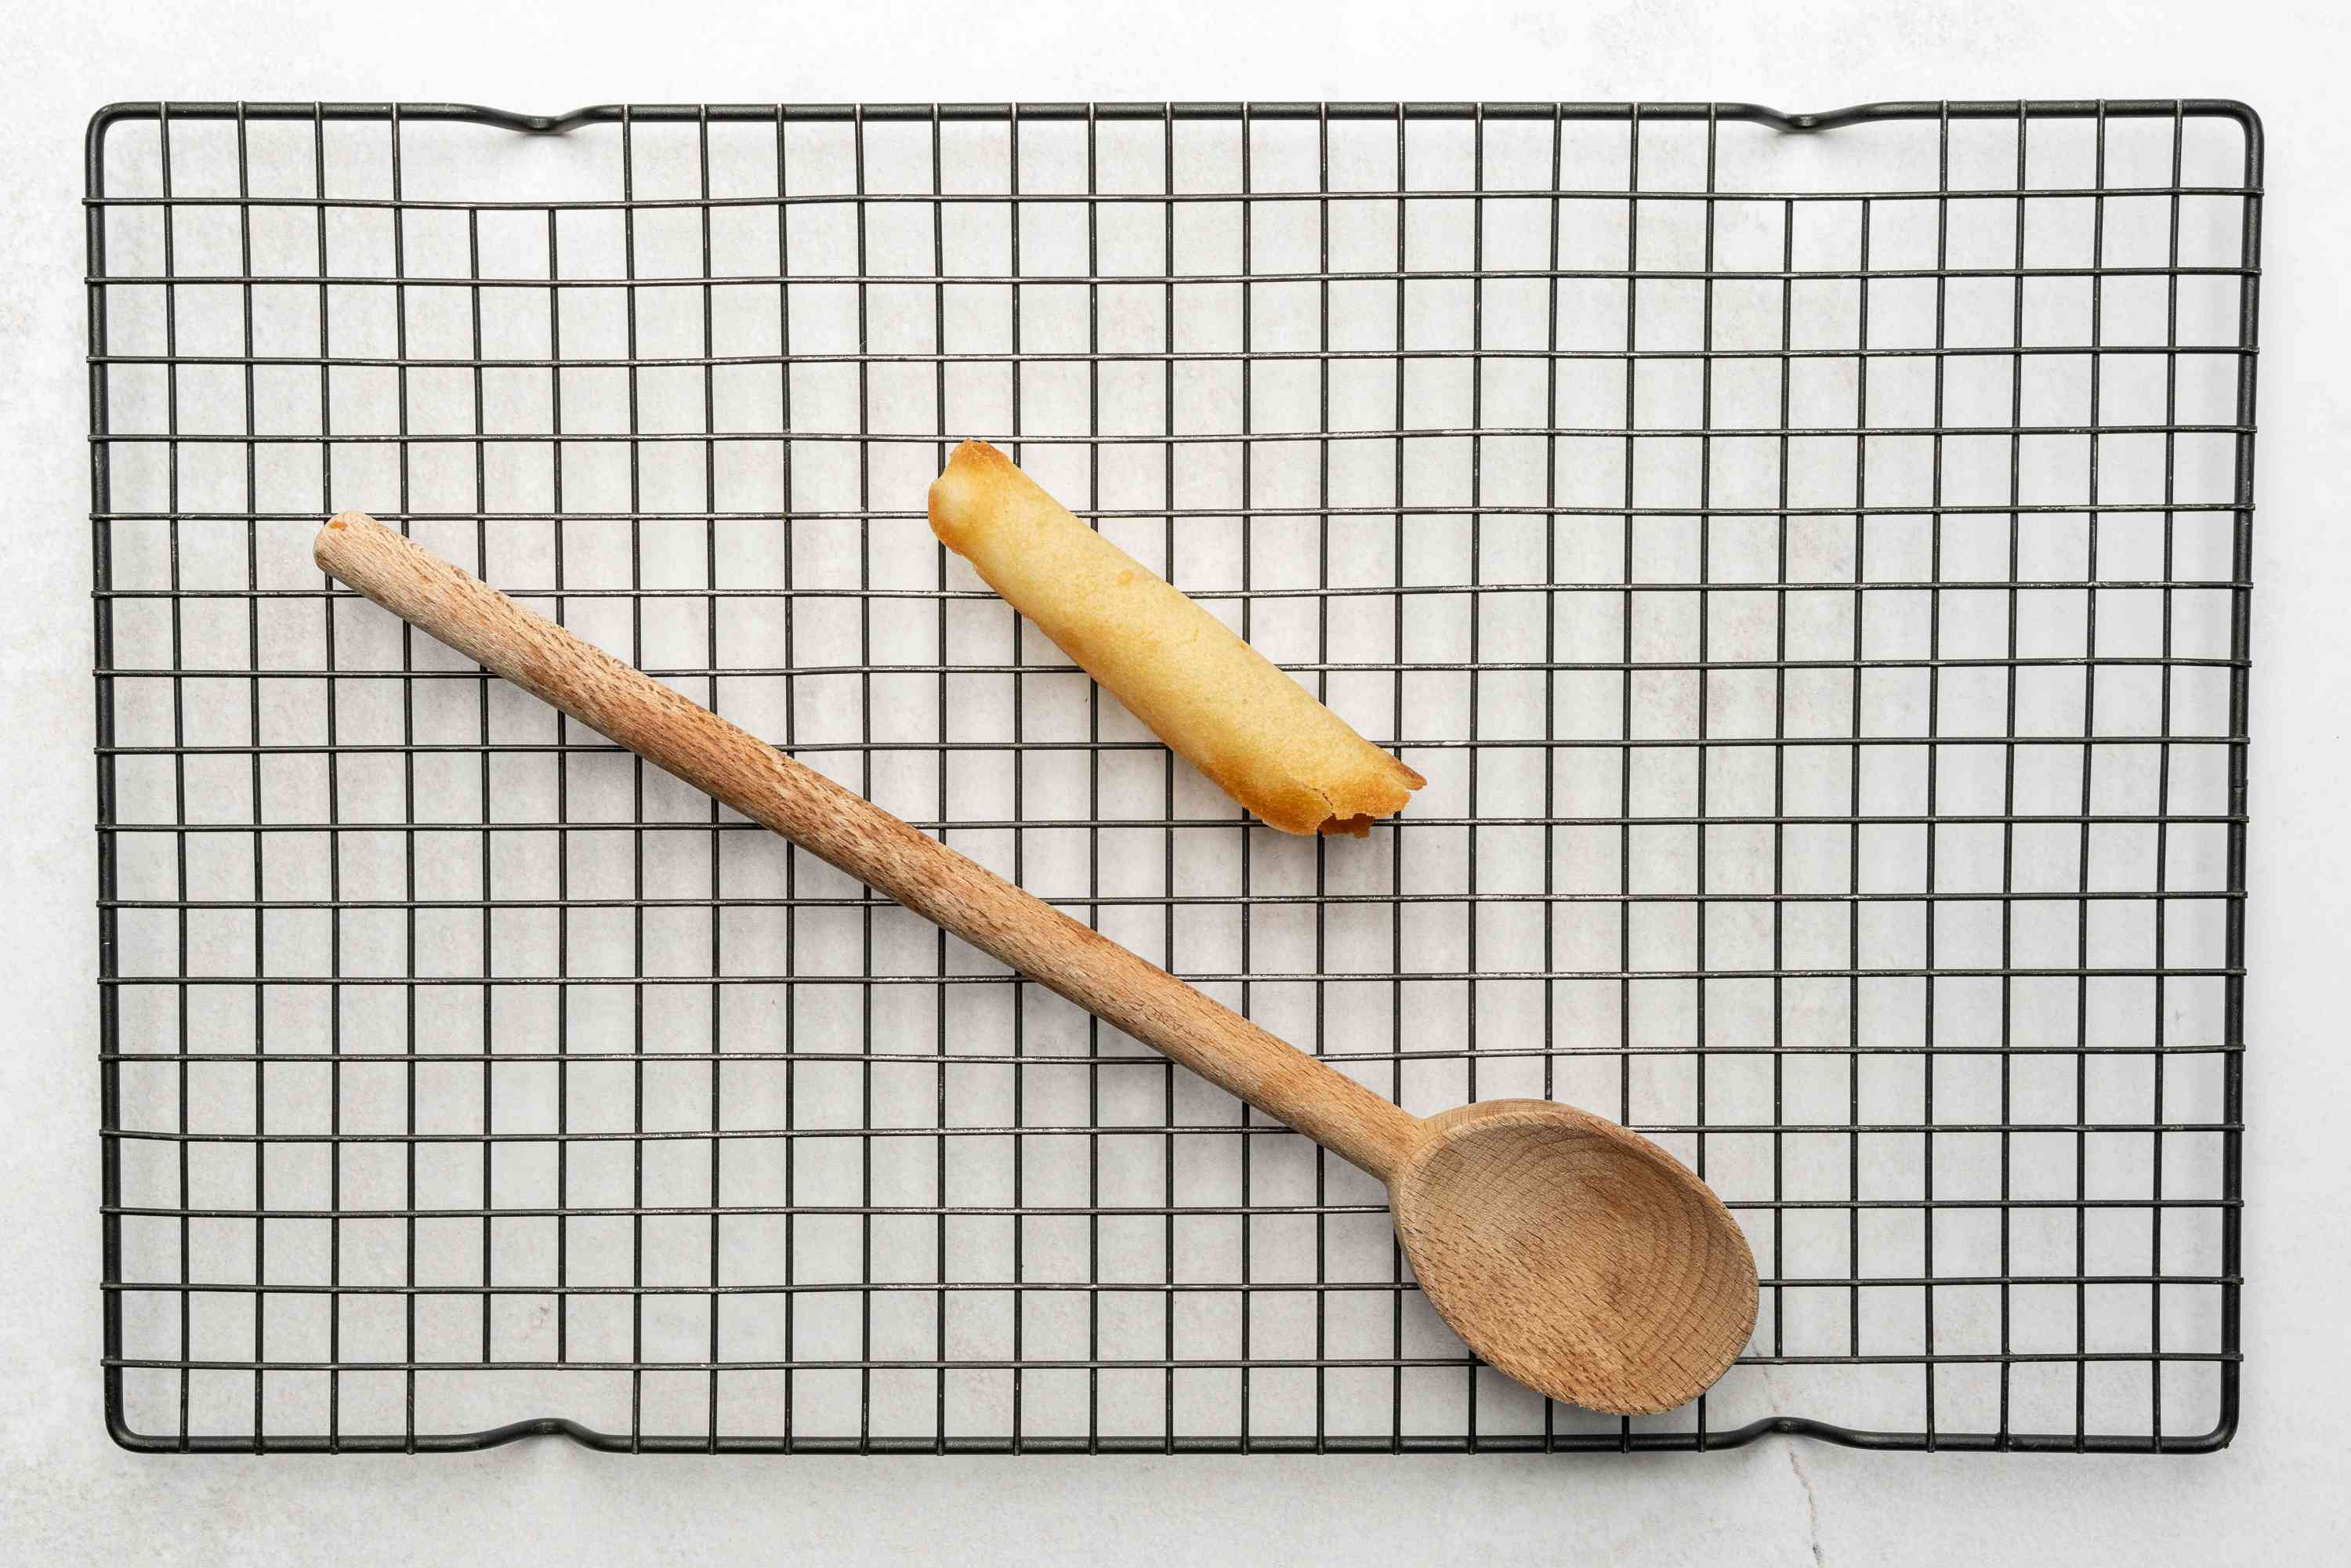 pirouette cookie on a cooling rack, wooden spoon